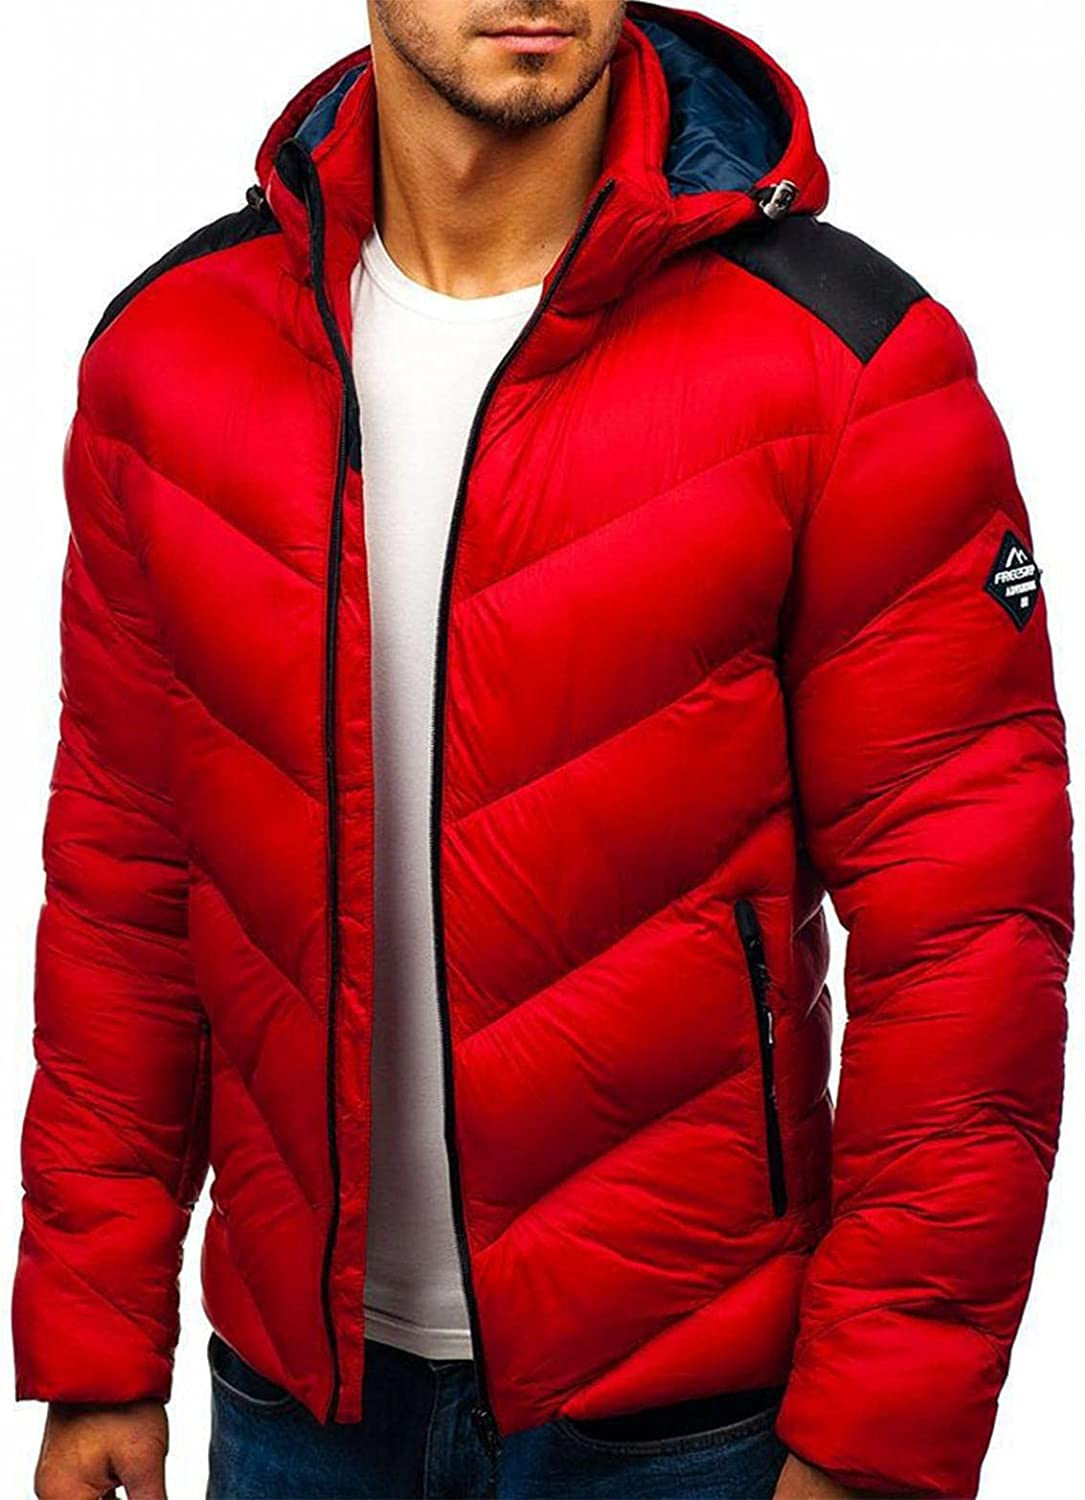 LEIYAN Mens Packable Down Hooded Jackets Zip Up Long Sleeve Lightweight Thermal Coat Winter Active Outerwear